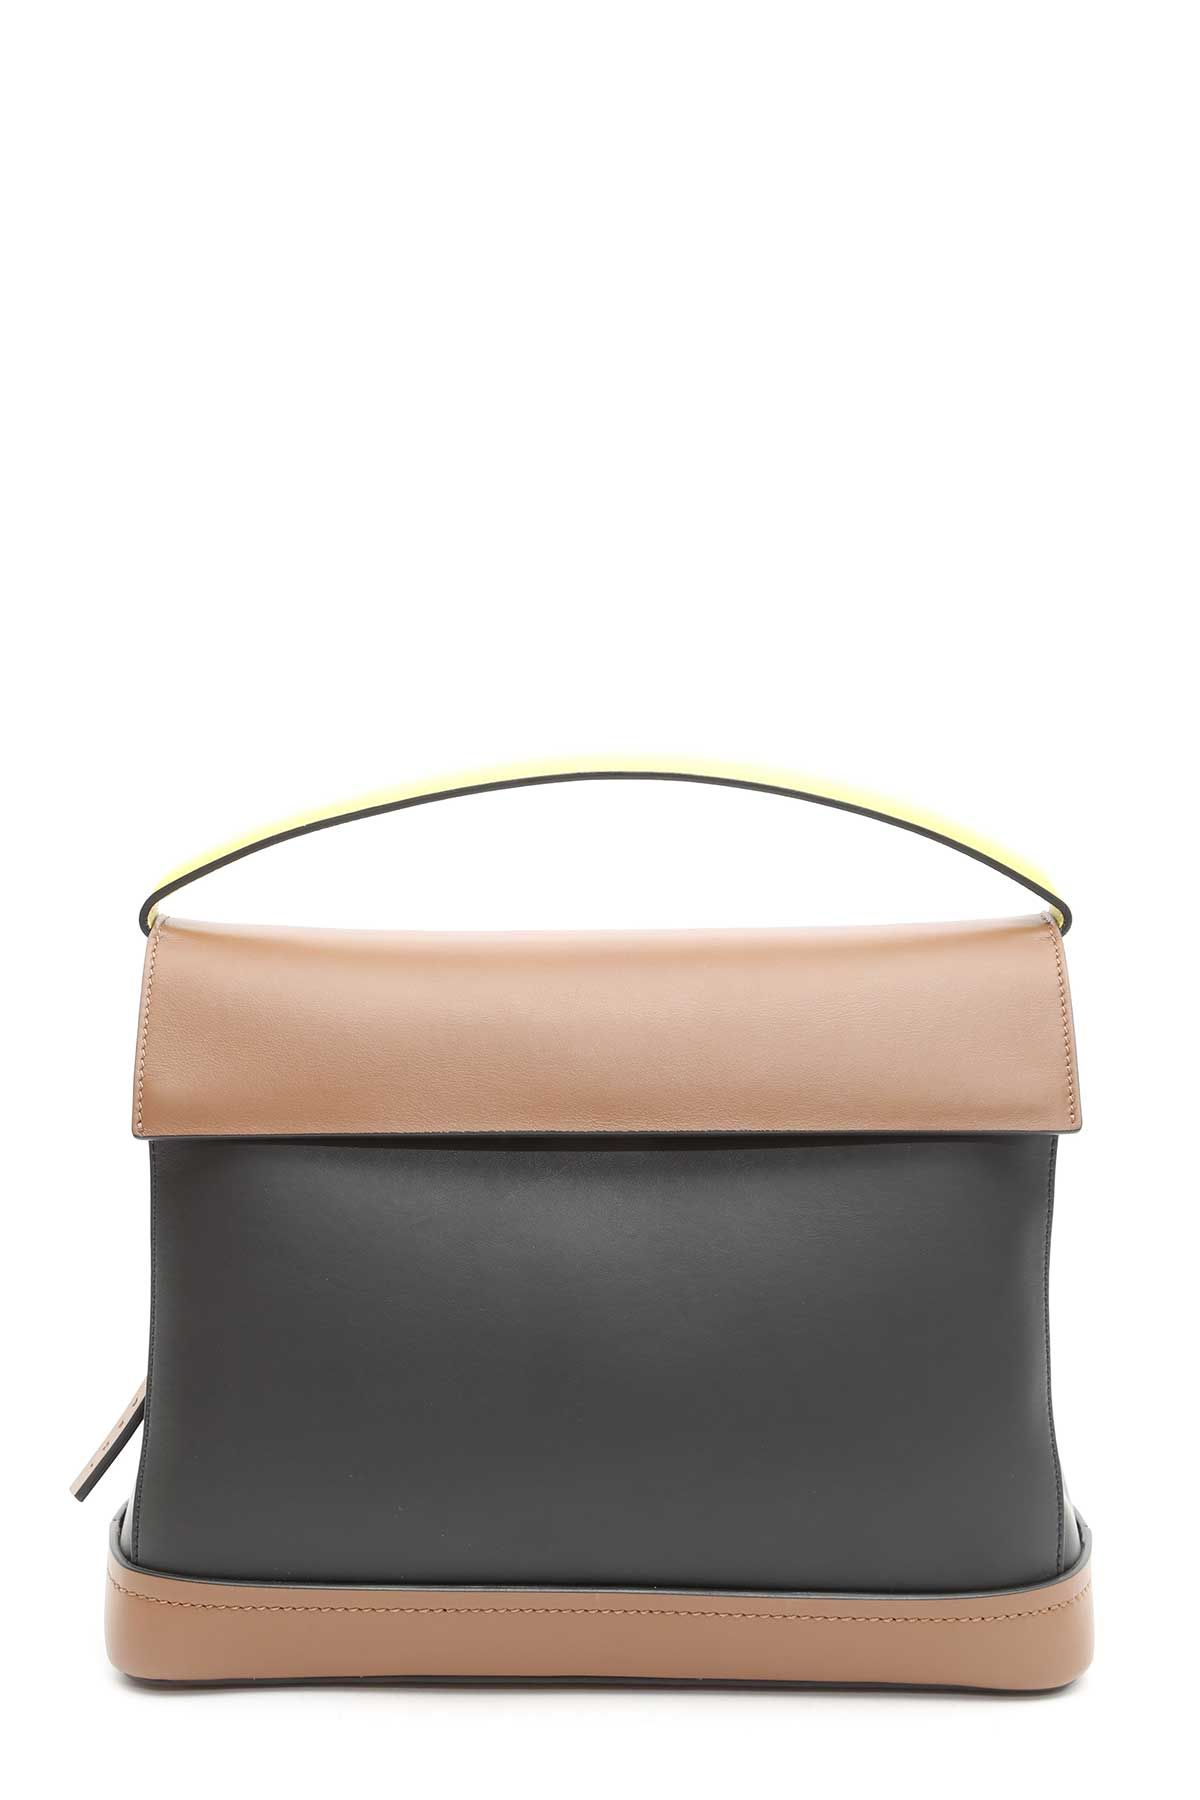 Marni city Pod Handbag